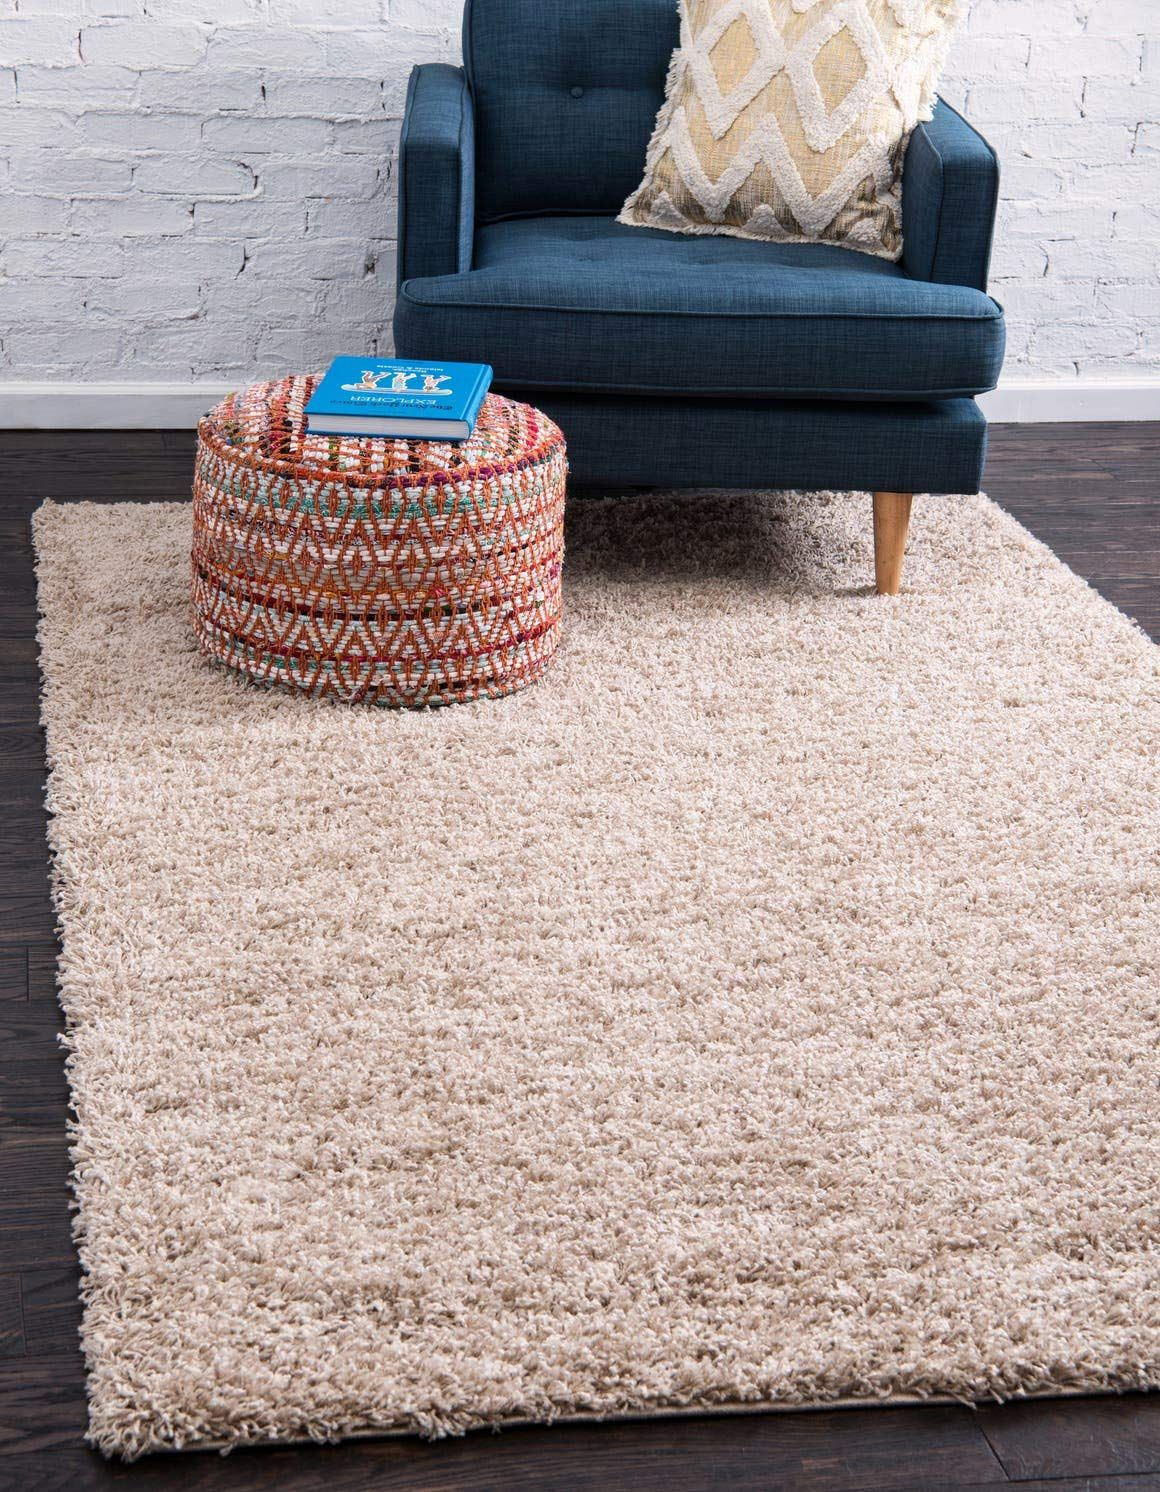 Unique Loom Solo Solid Shag Collection Modern Plush Taupe Area Rug 4 0 X 6 0 Click Image To Review More Det In 2020 Shag Area Rug Area Rugs Solid Color Area Rugs